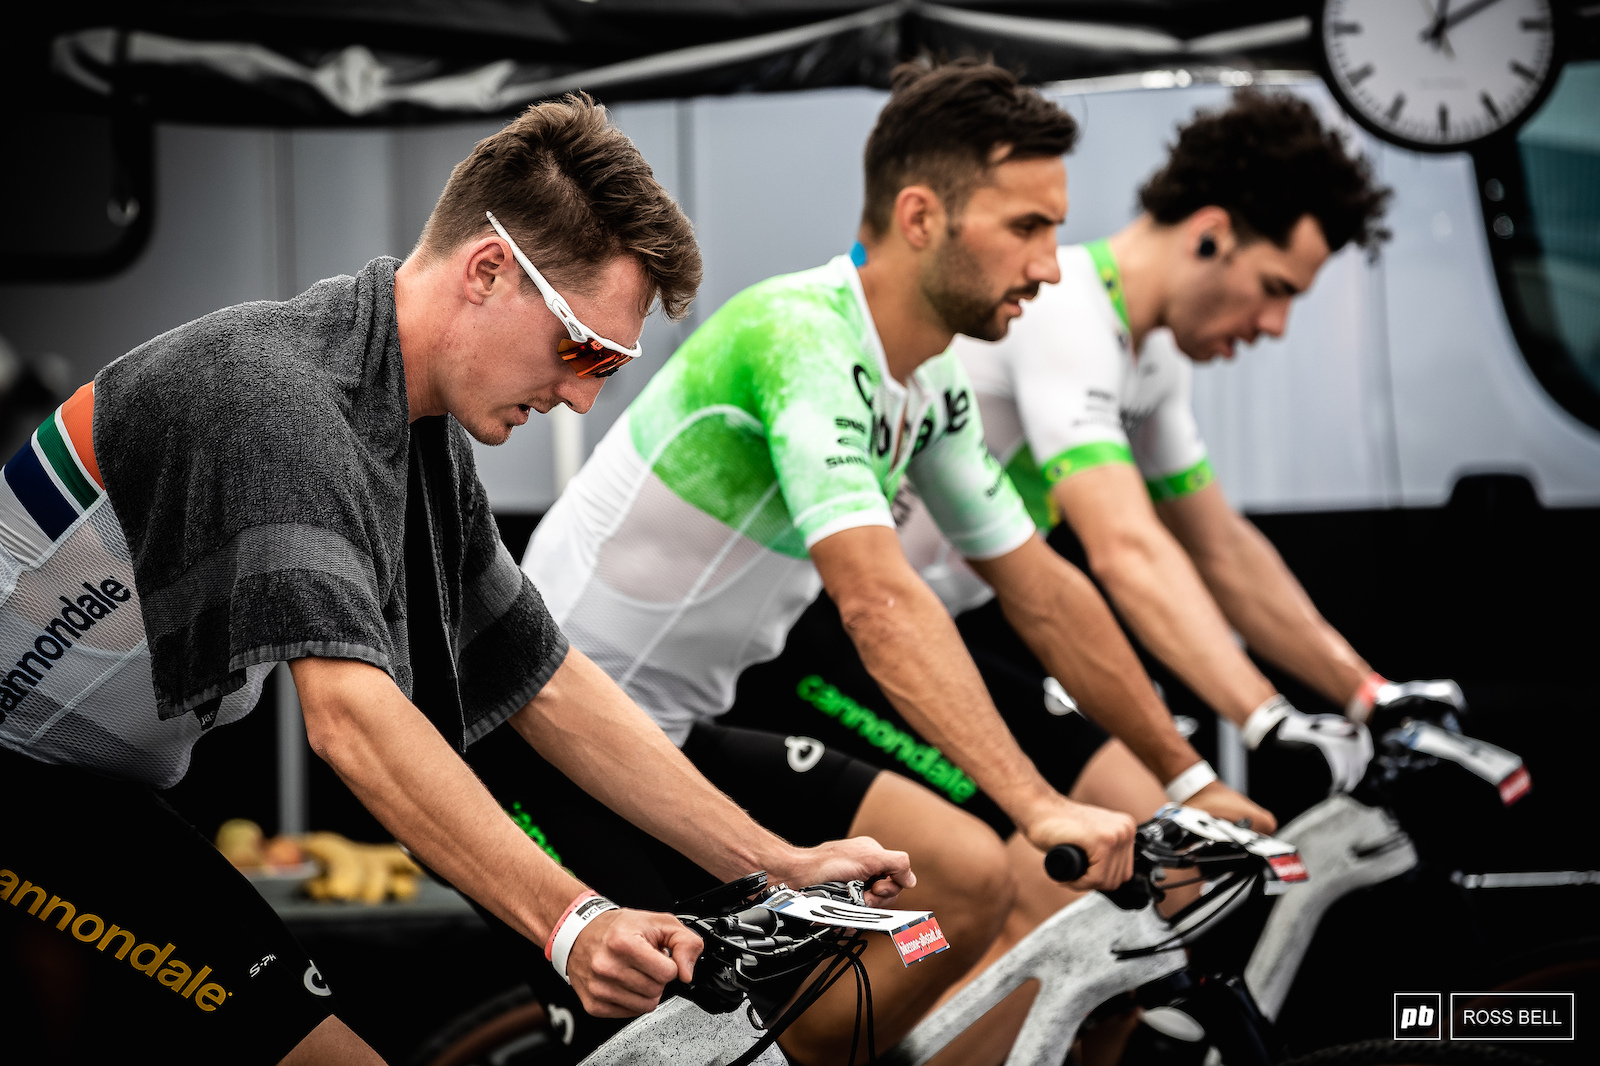 Alan Hatherly was top dog in the Cannondale tent in his first World Cup outing for the team.